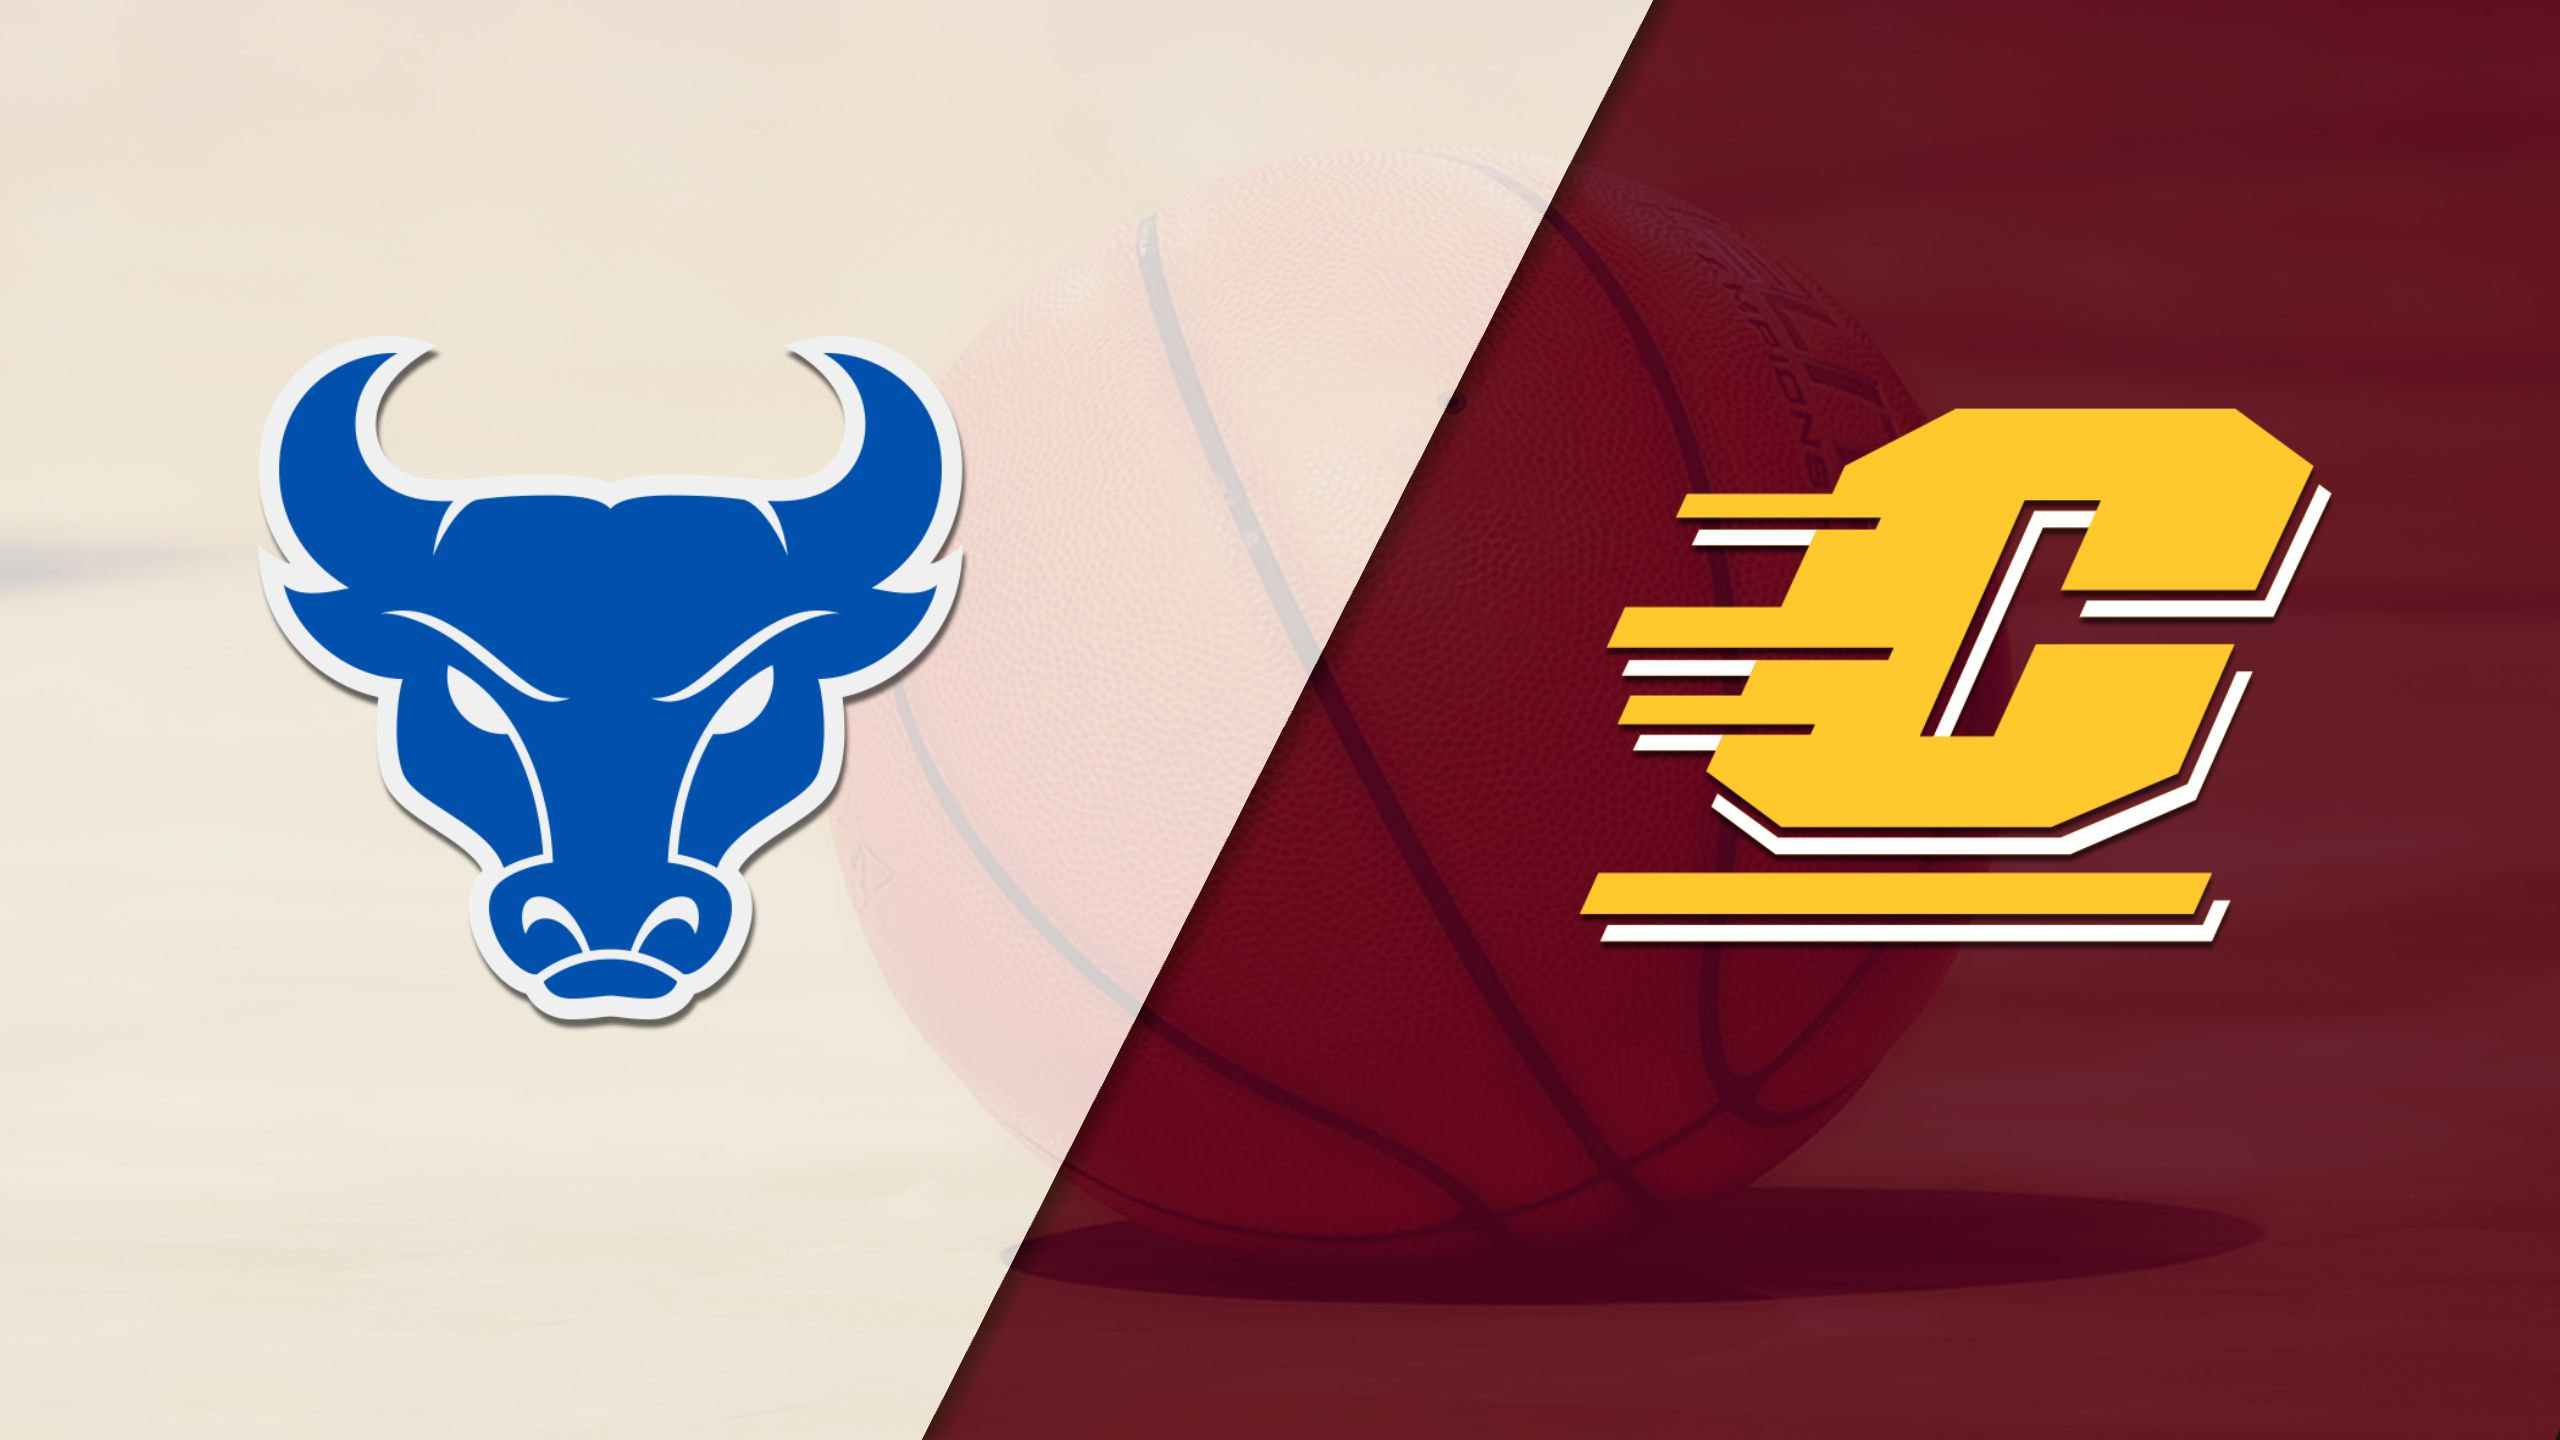 Buffalo vs. Central Michigan (W Basketball)